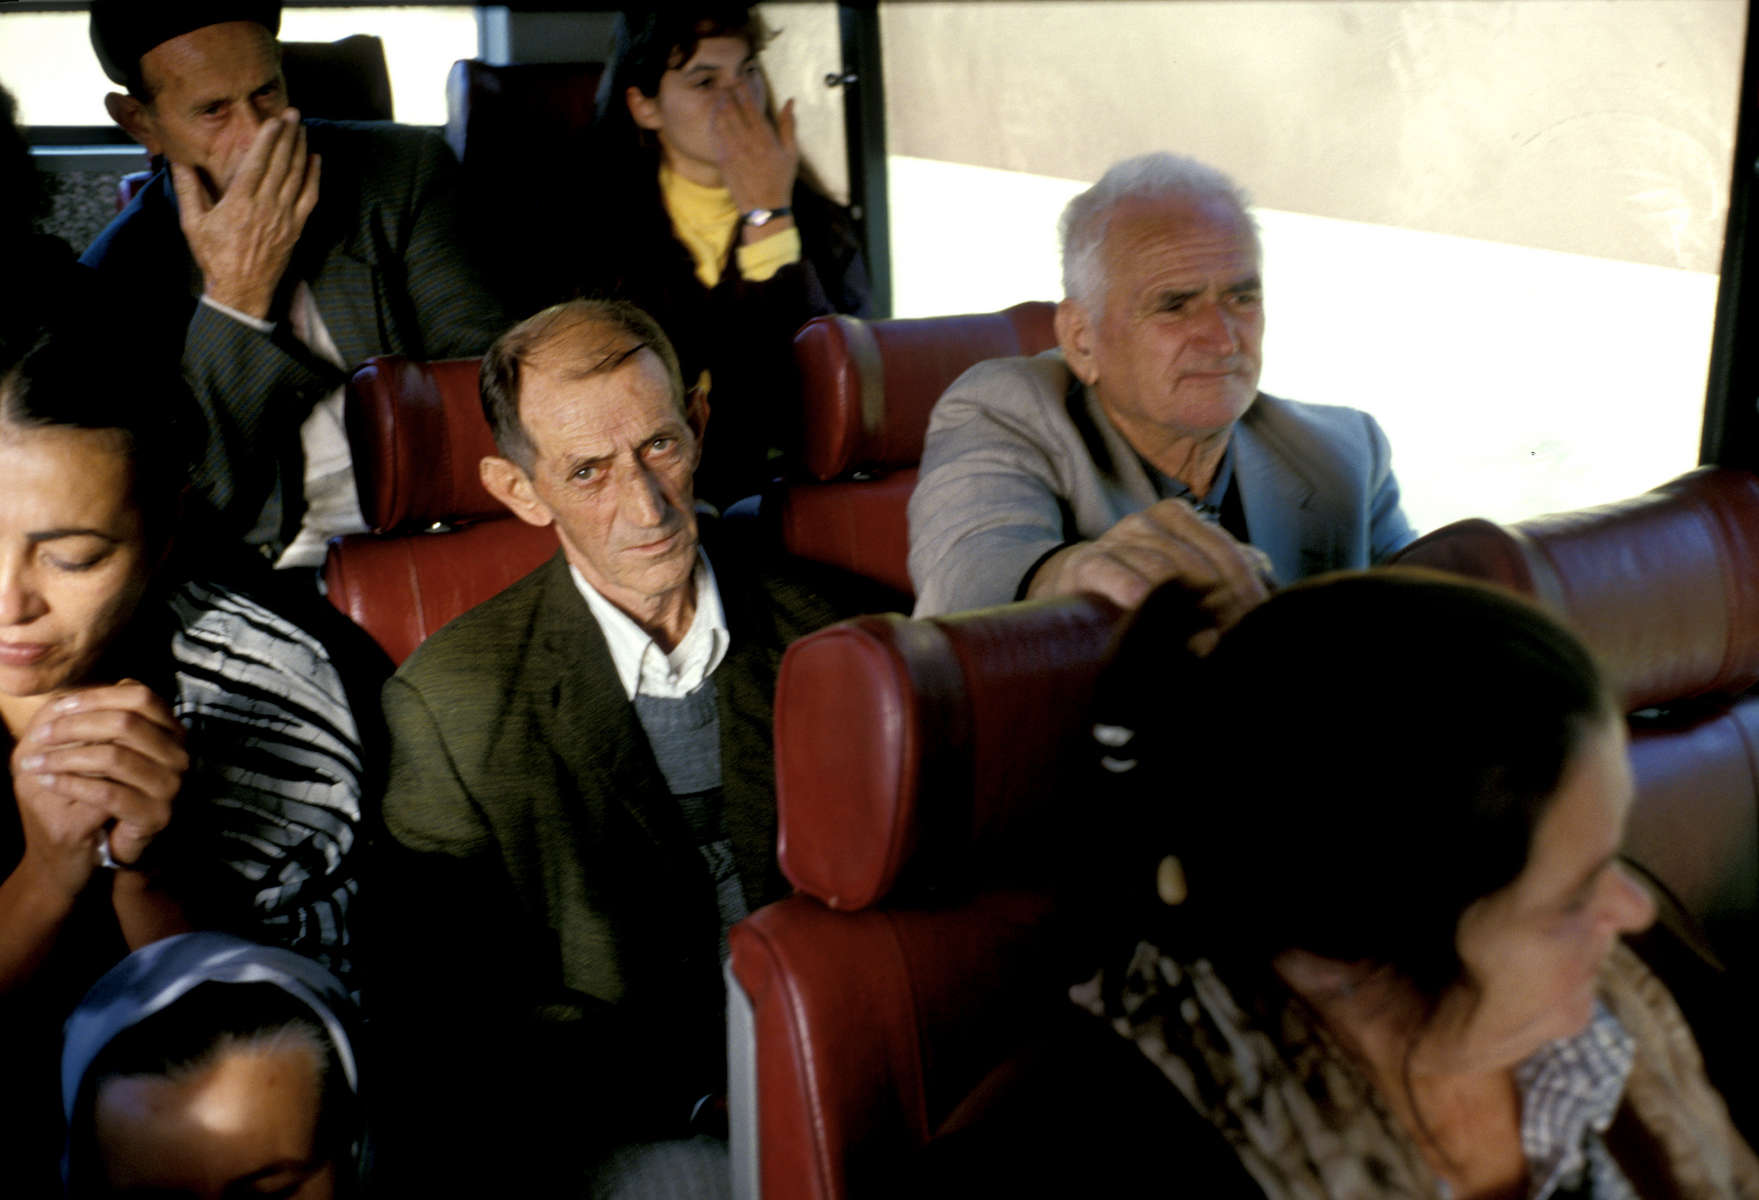 Srebrenica refugees ona bus taking them from Sarajevo to their home town, to inspect the homes they fled in 1995 and to begin legal proceedings to reclaim their property.